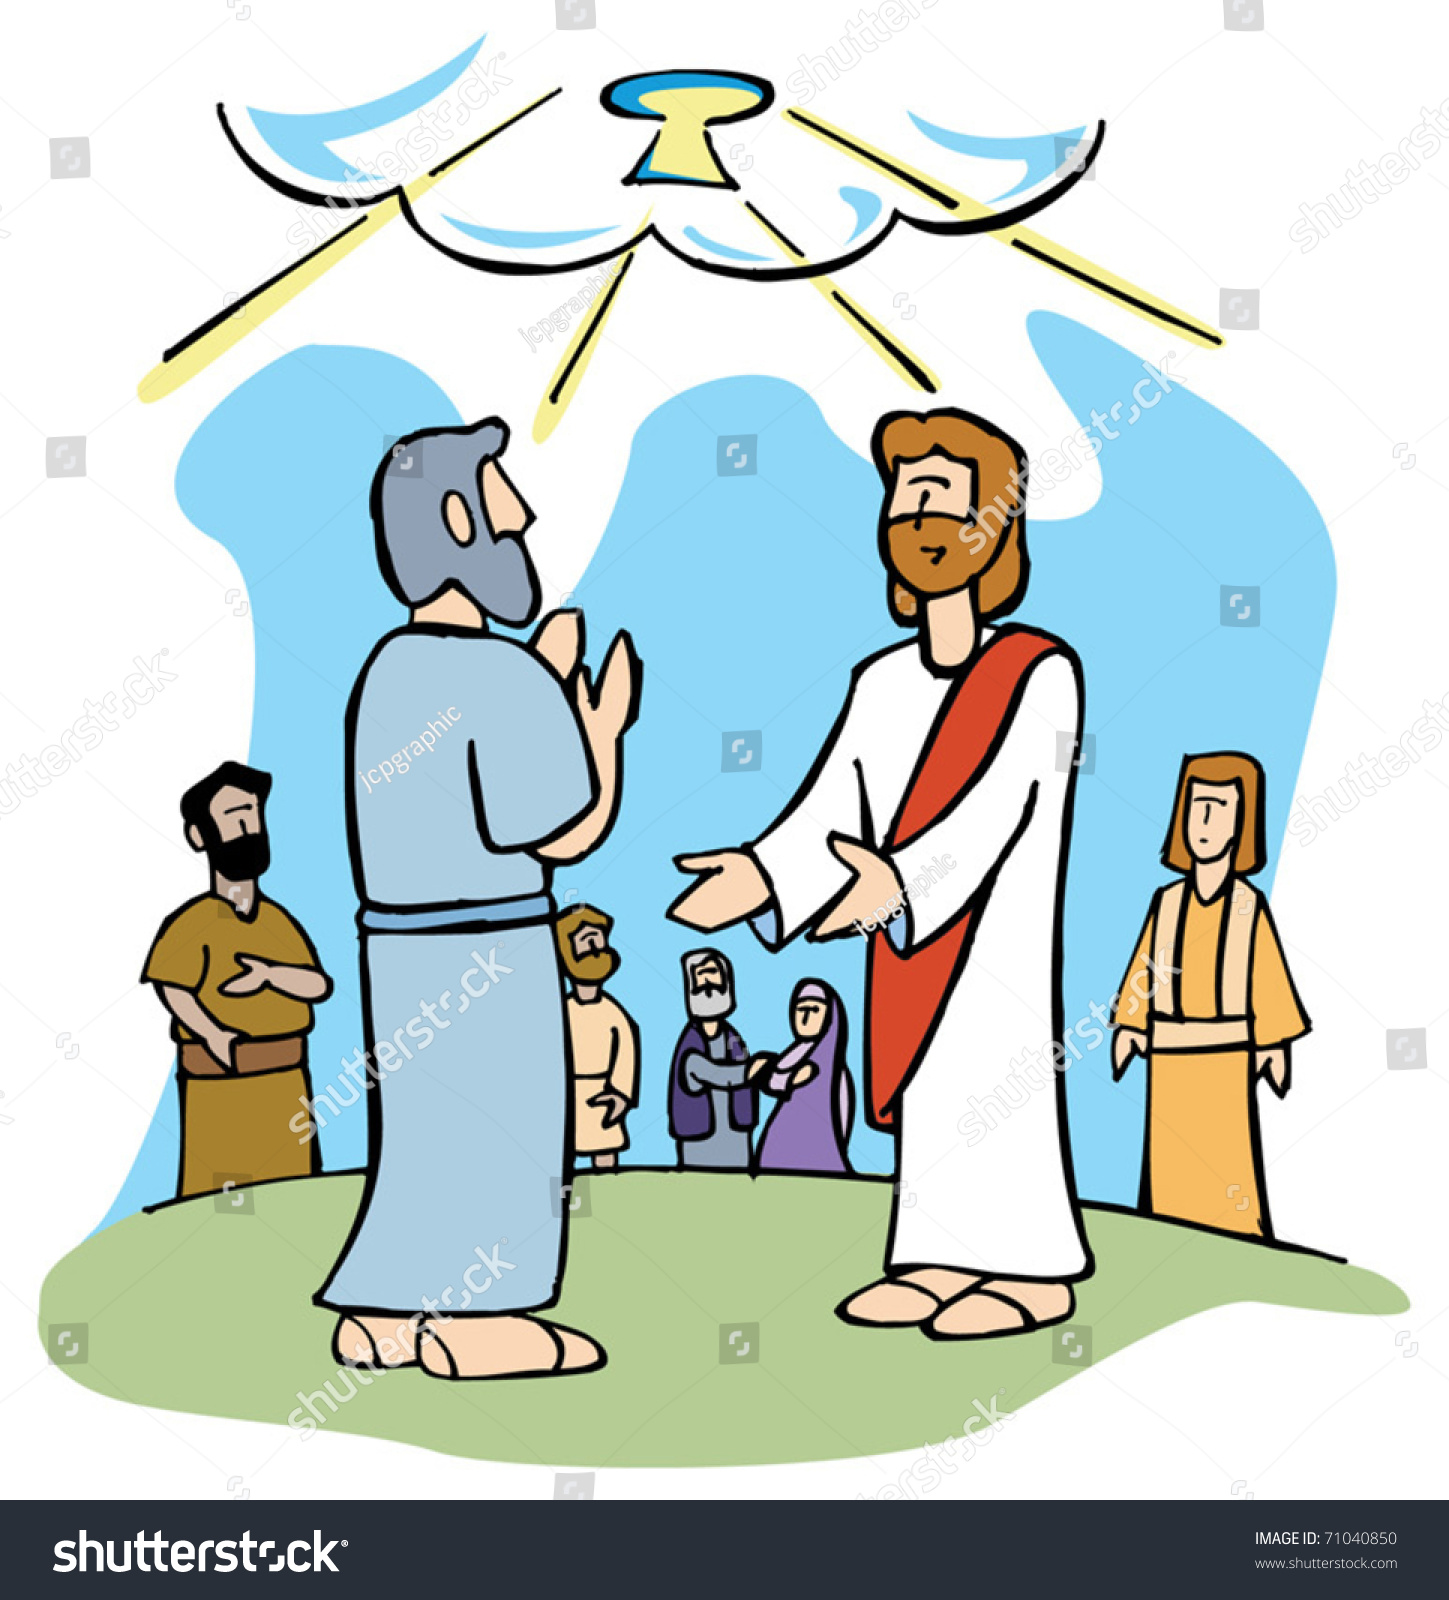 jesus and peter clipart - photo #29